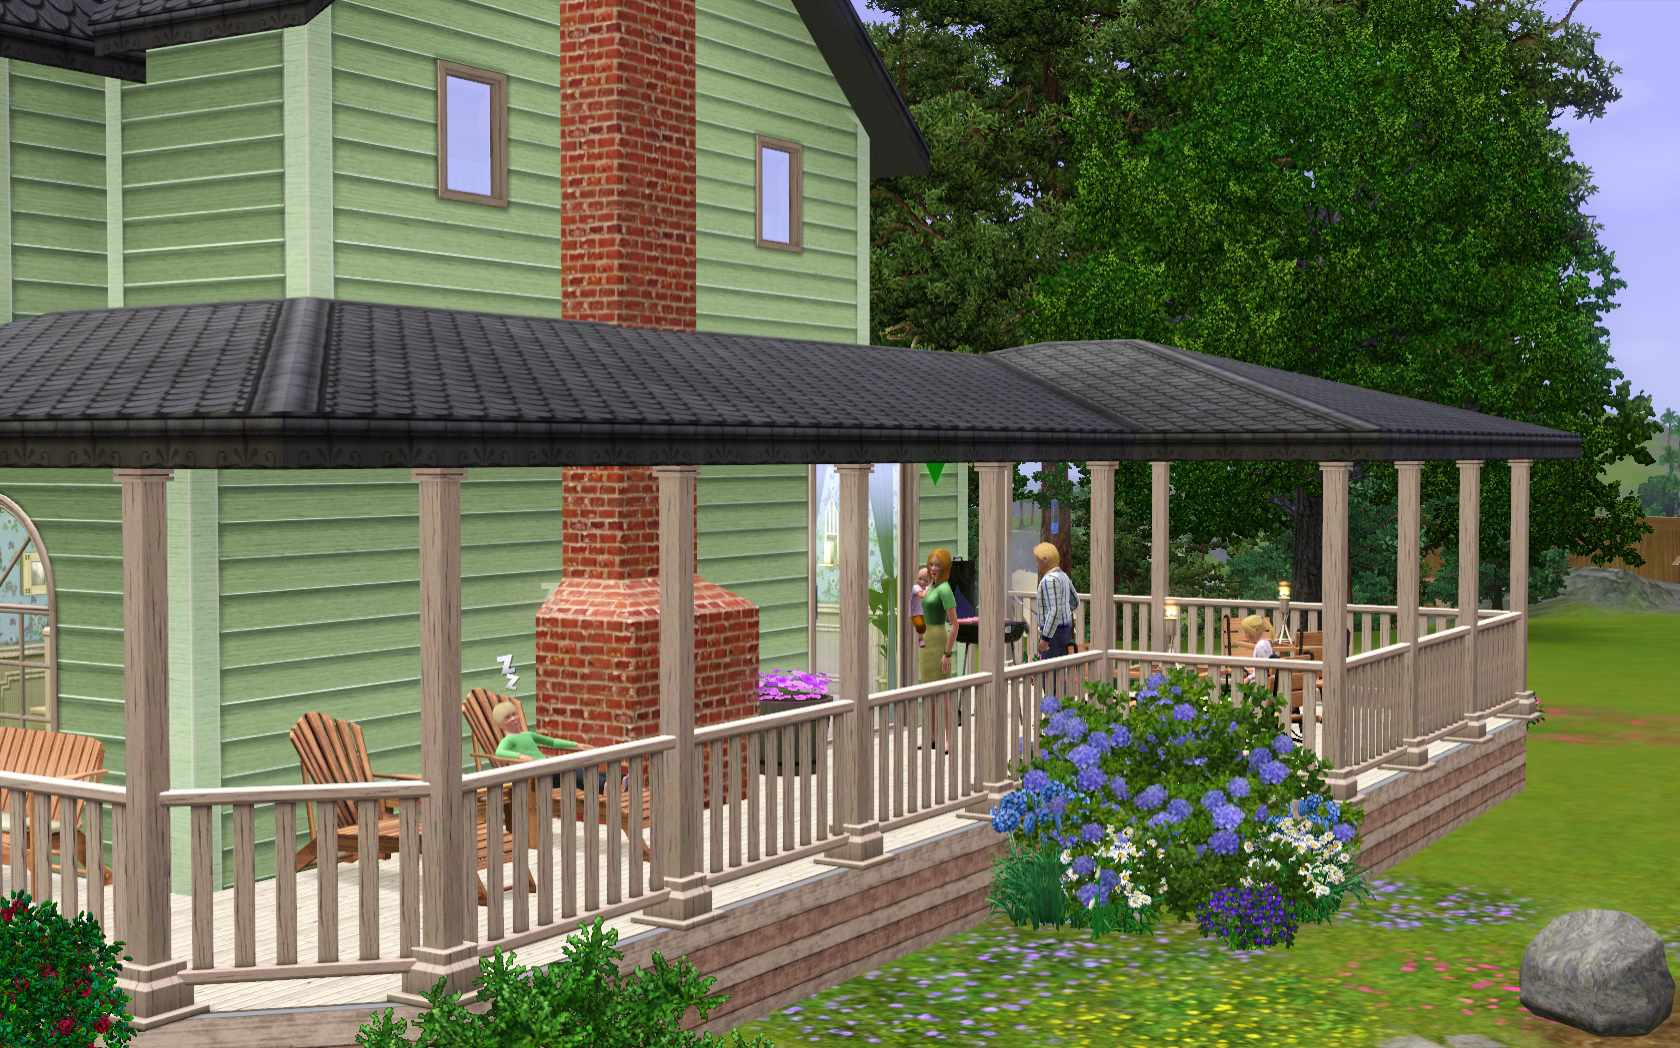 The sims 3 room build ideas and examples the sims 3 home building and design sisterspd